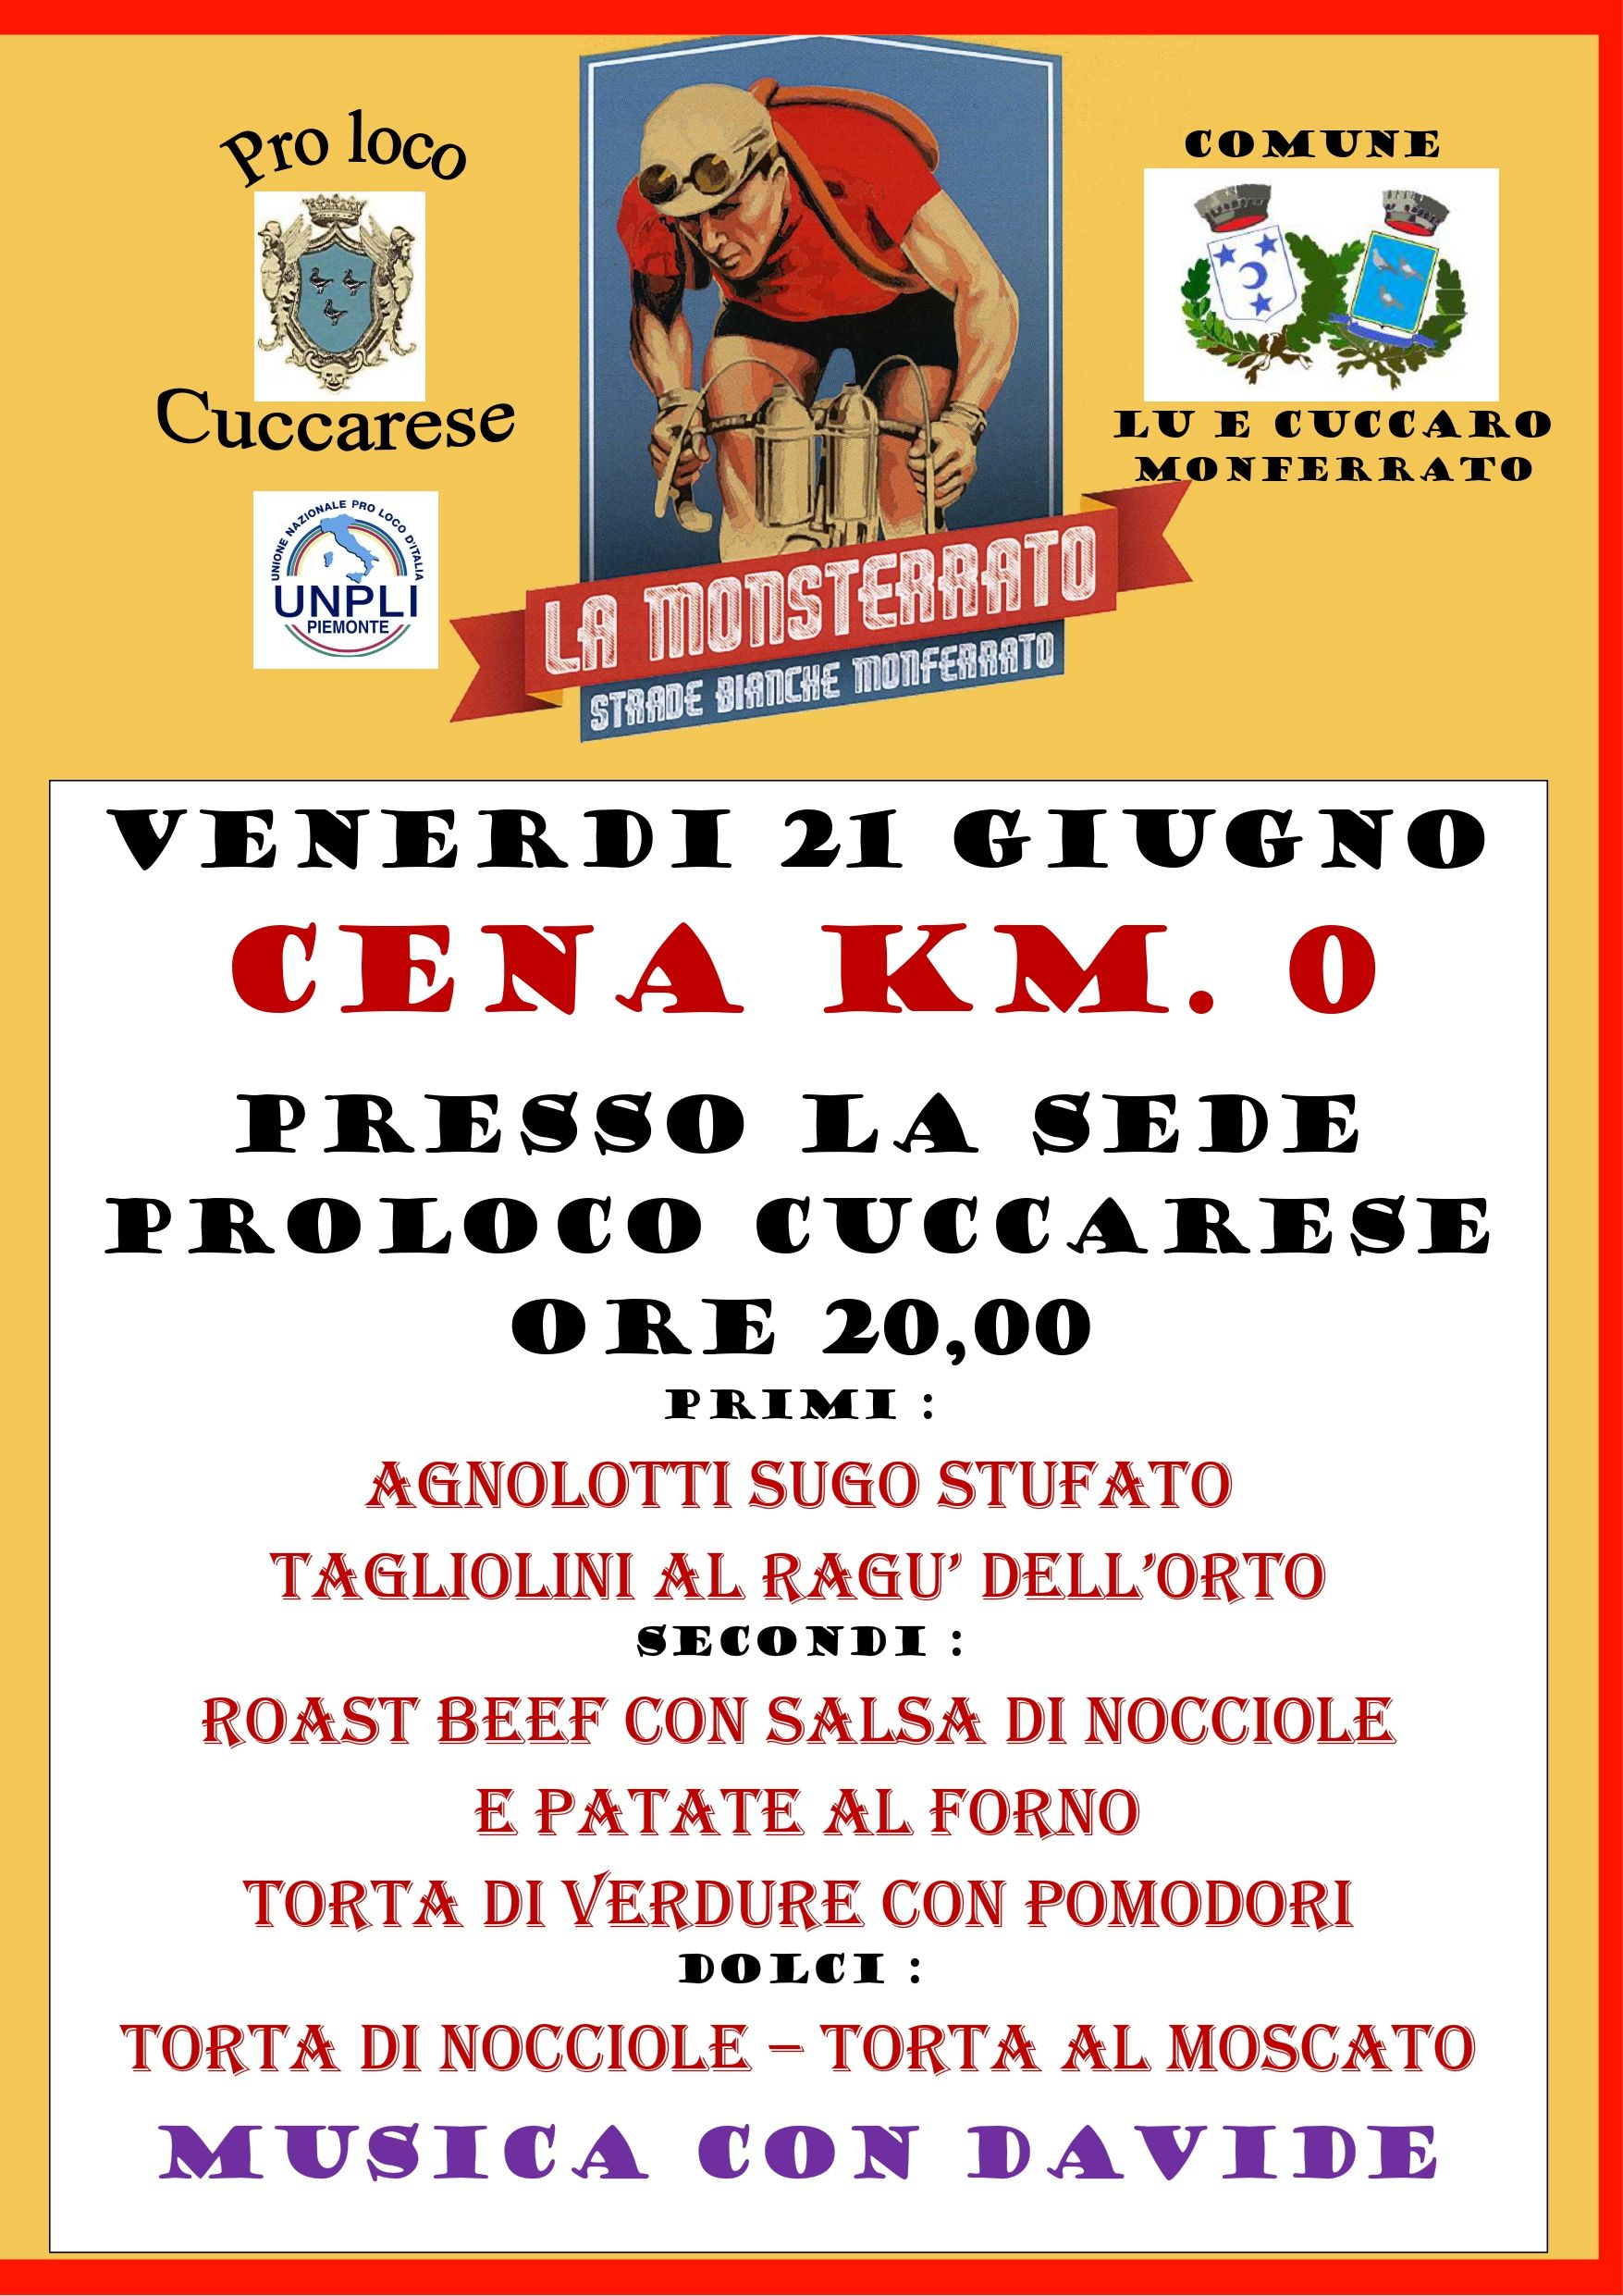 Weekend Monsterrato in Monferrato